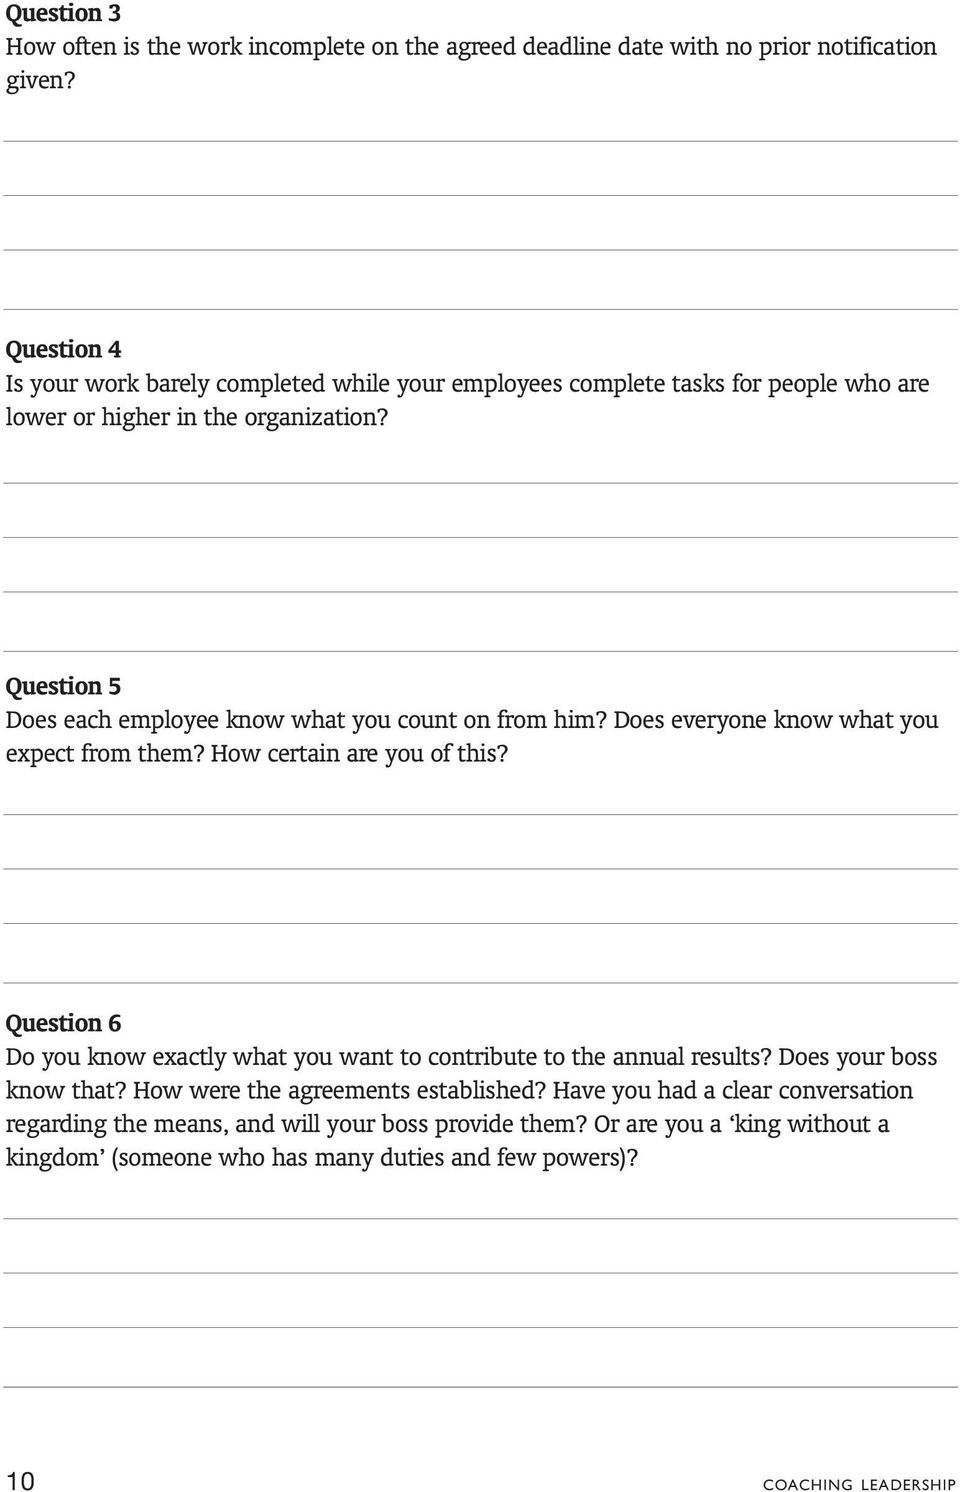 Question 5 Does each employee know what you count on from him? Does everyone know what you expect from them? How certain are you of this?